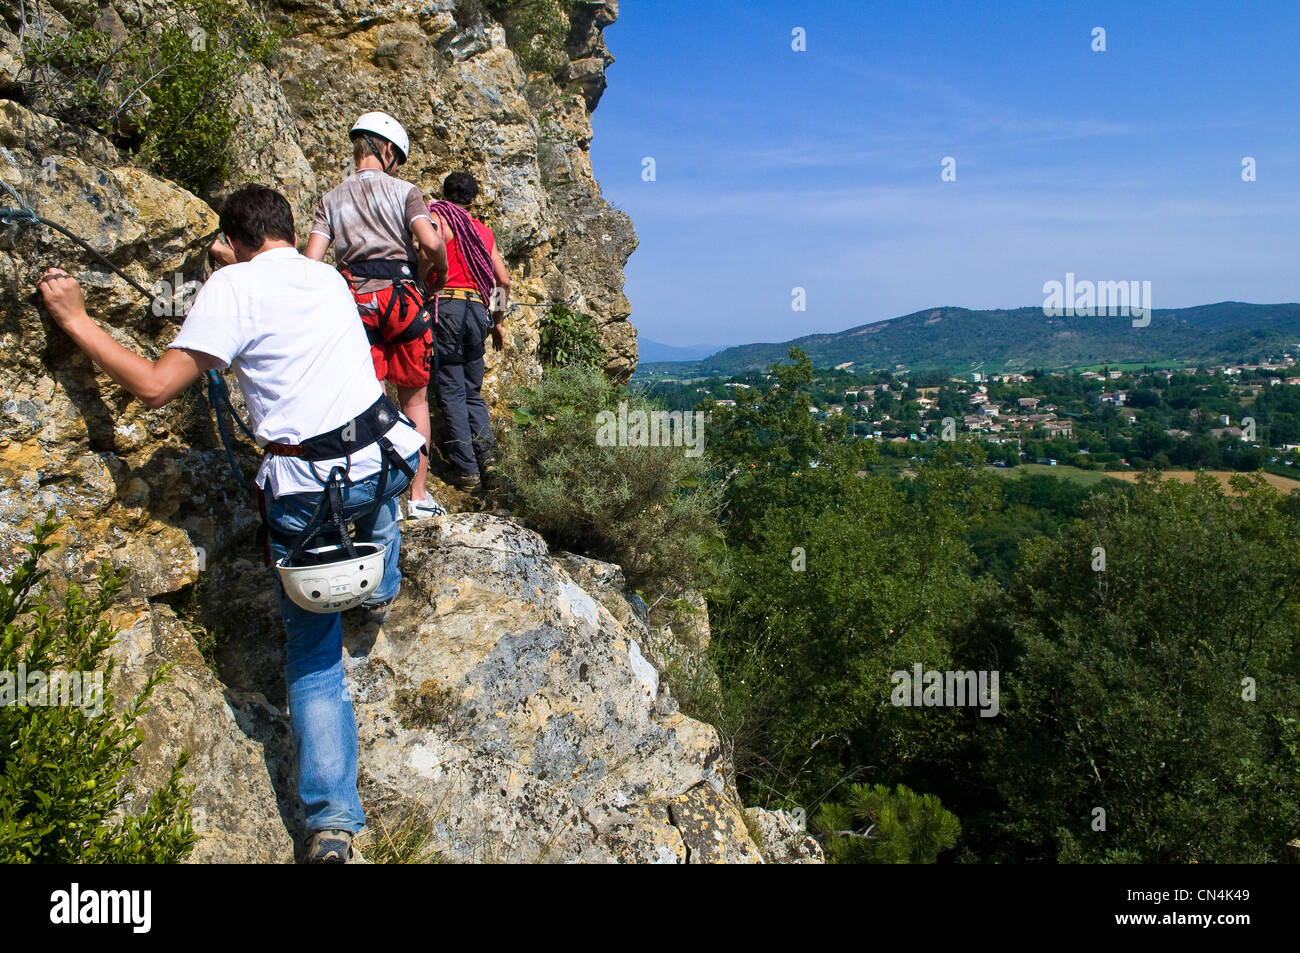 France, Ardeche, climbing on a limestone massif above Vallon Pont d'Arc in the surroundings of Salavas Stock Photo